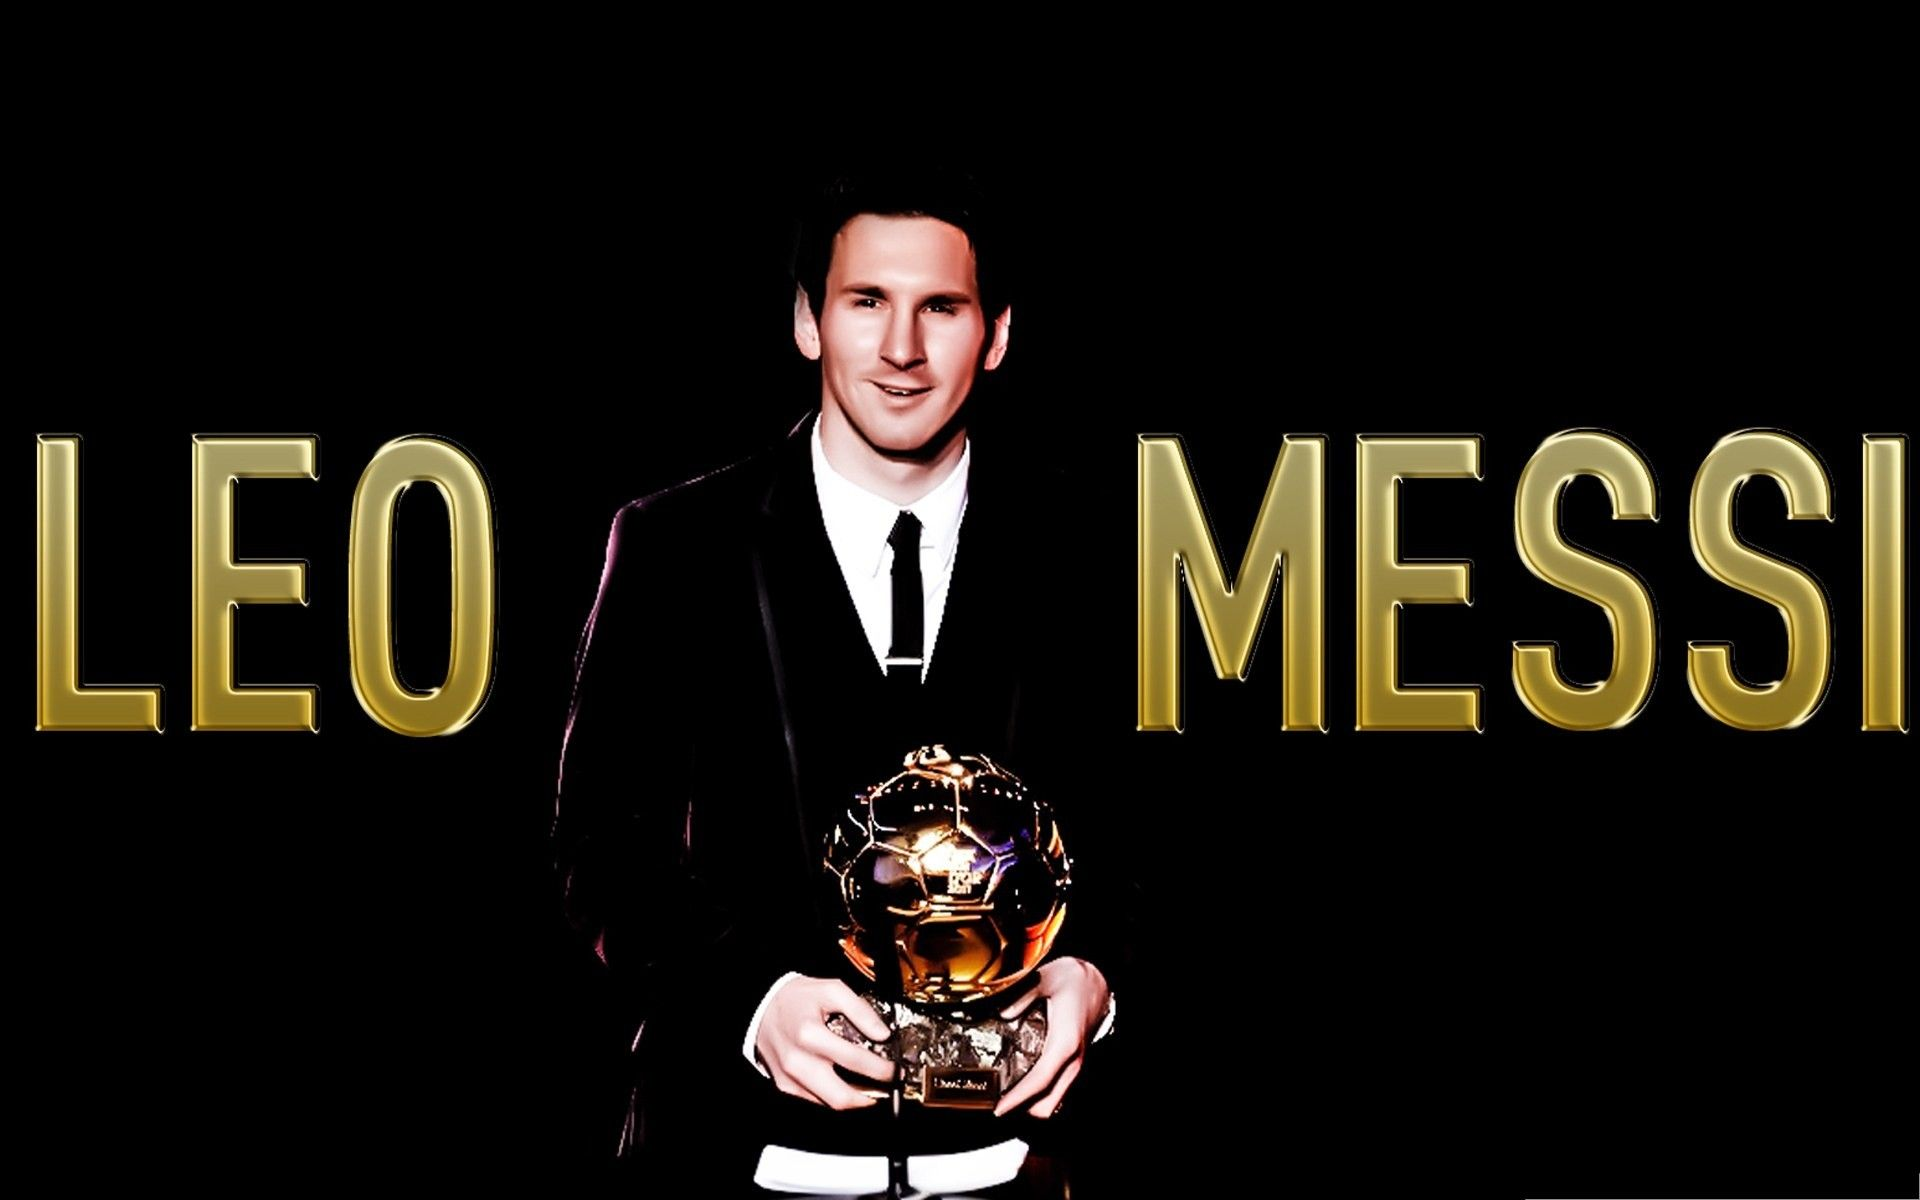 lionel messi hd cup download wallpapers